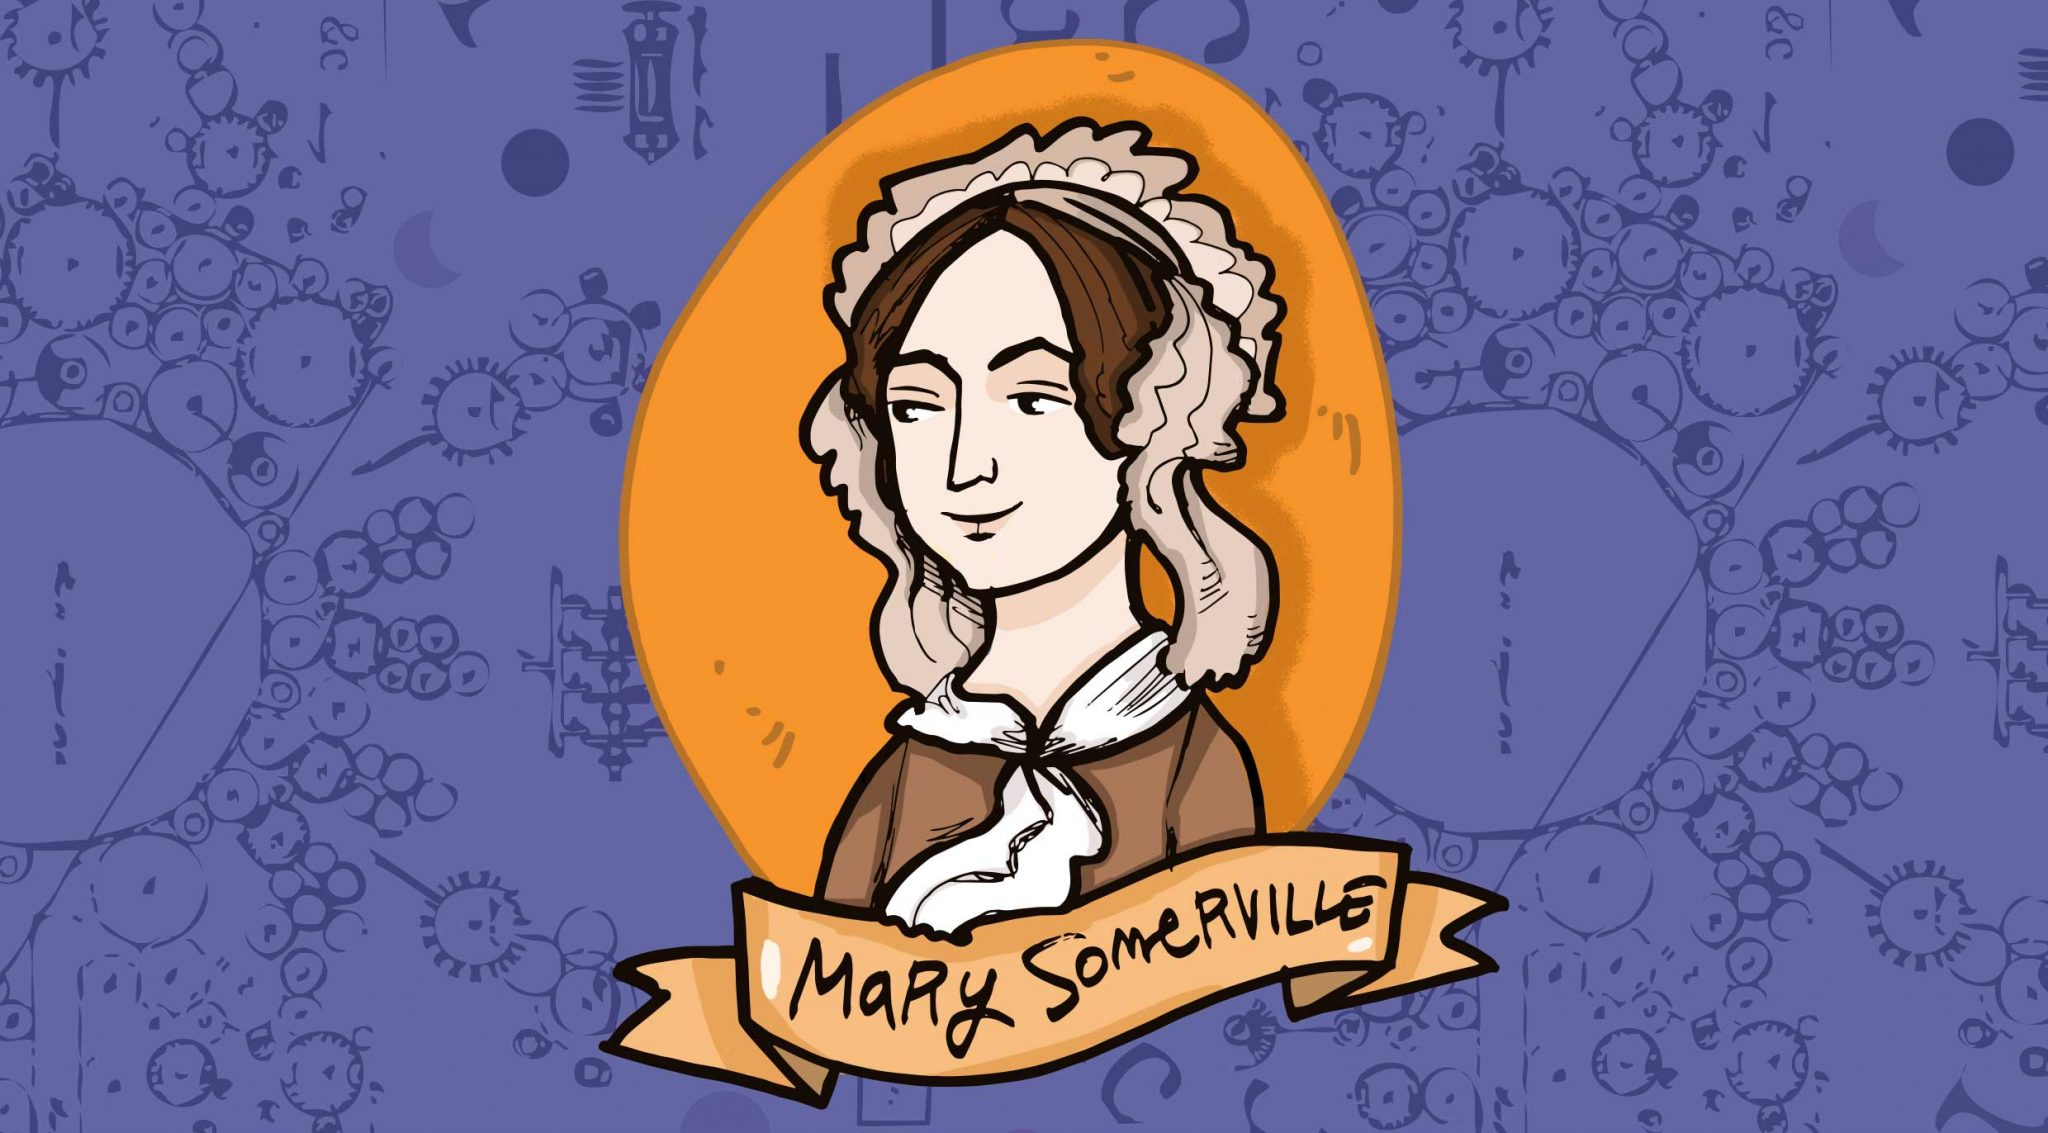 Mary-Somerville-ilustration